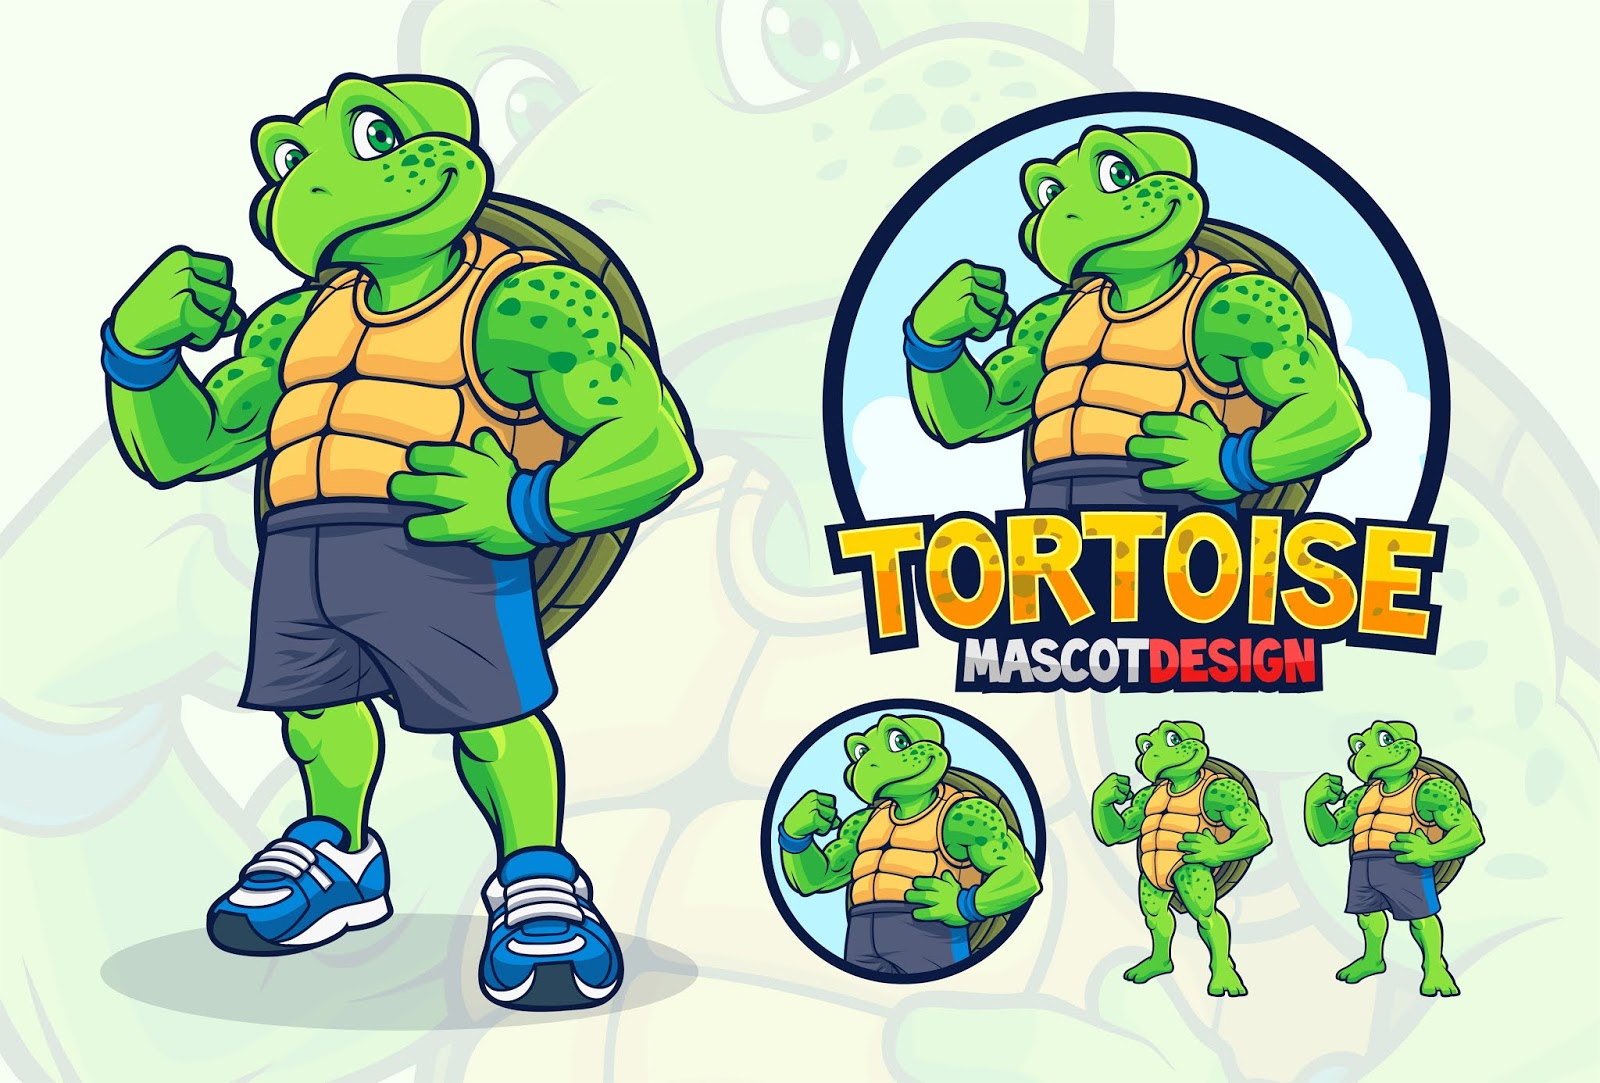 Turtle Mascot Design Companies Sport Teams Free Download Vector CDR, AI, EPS and PNG Formats